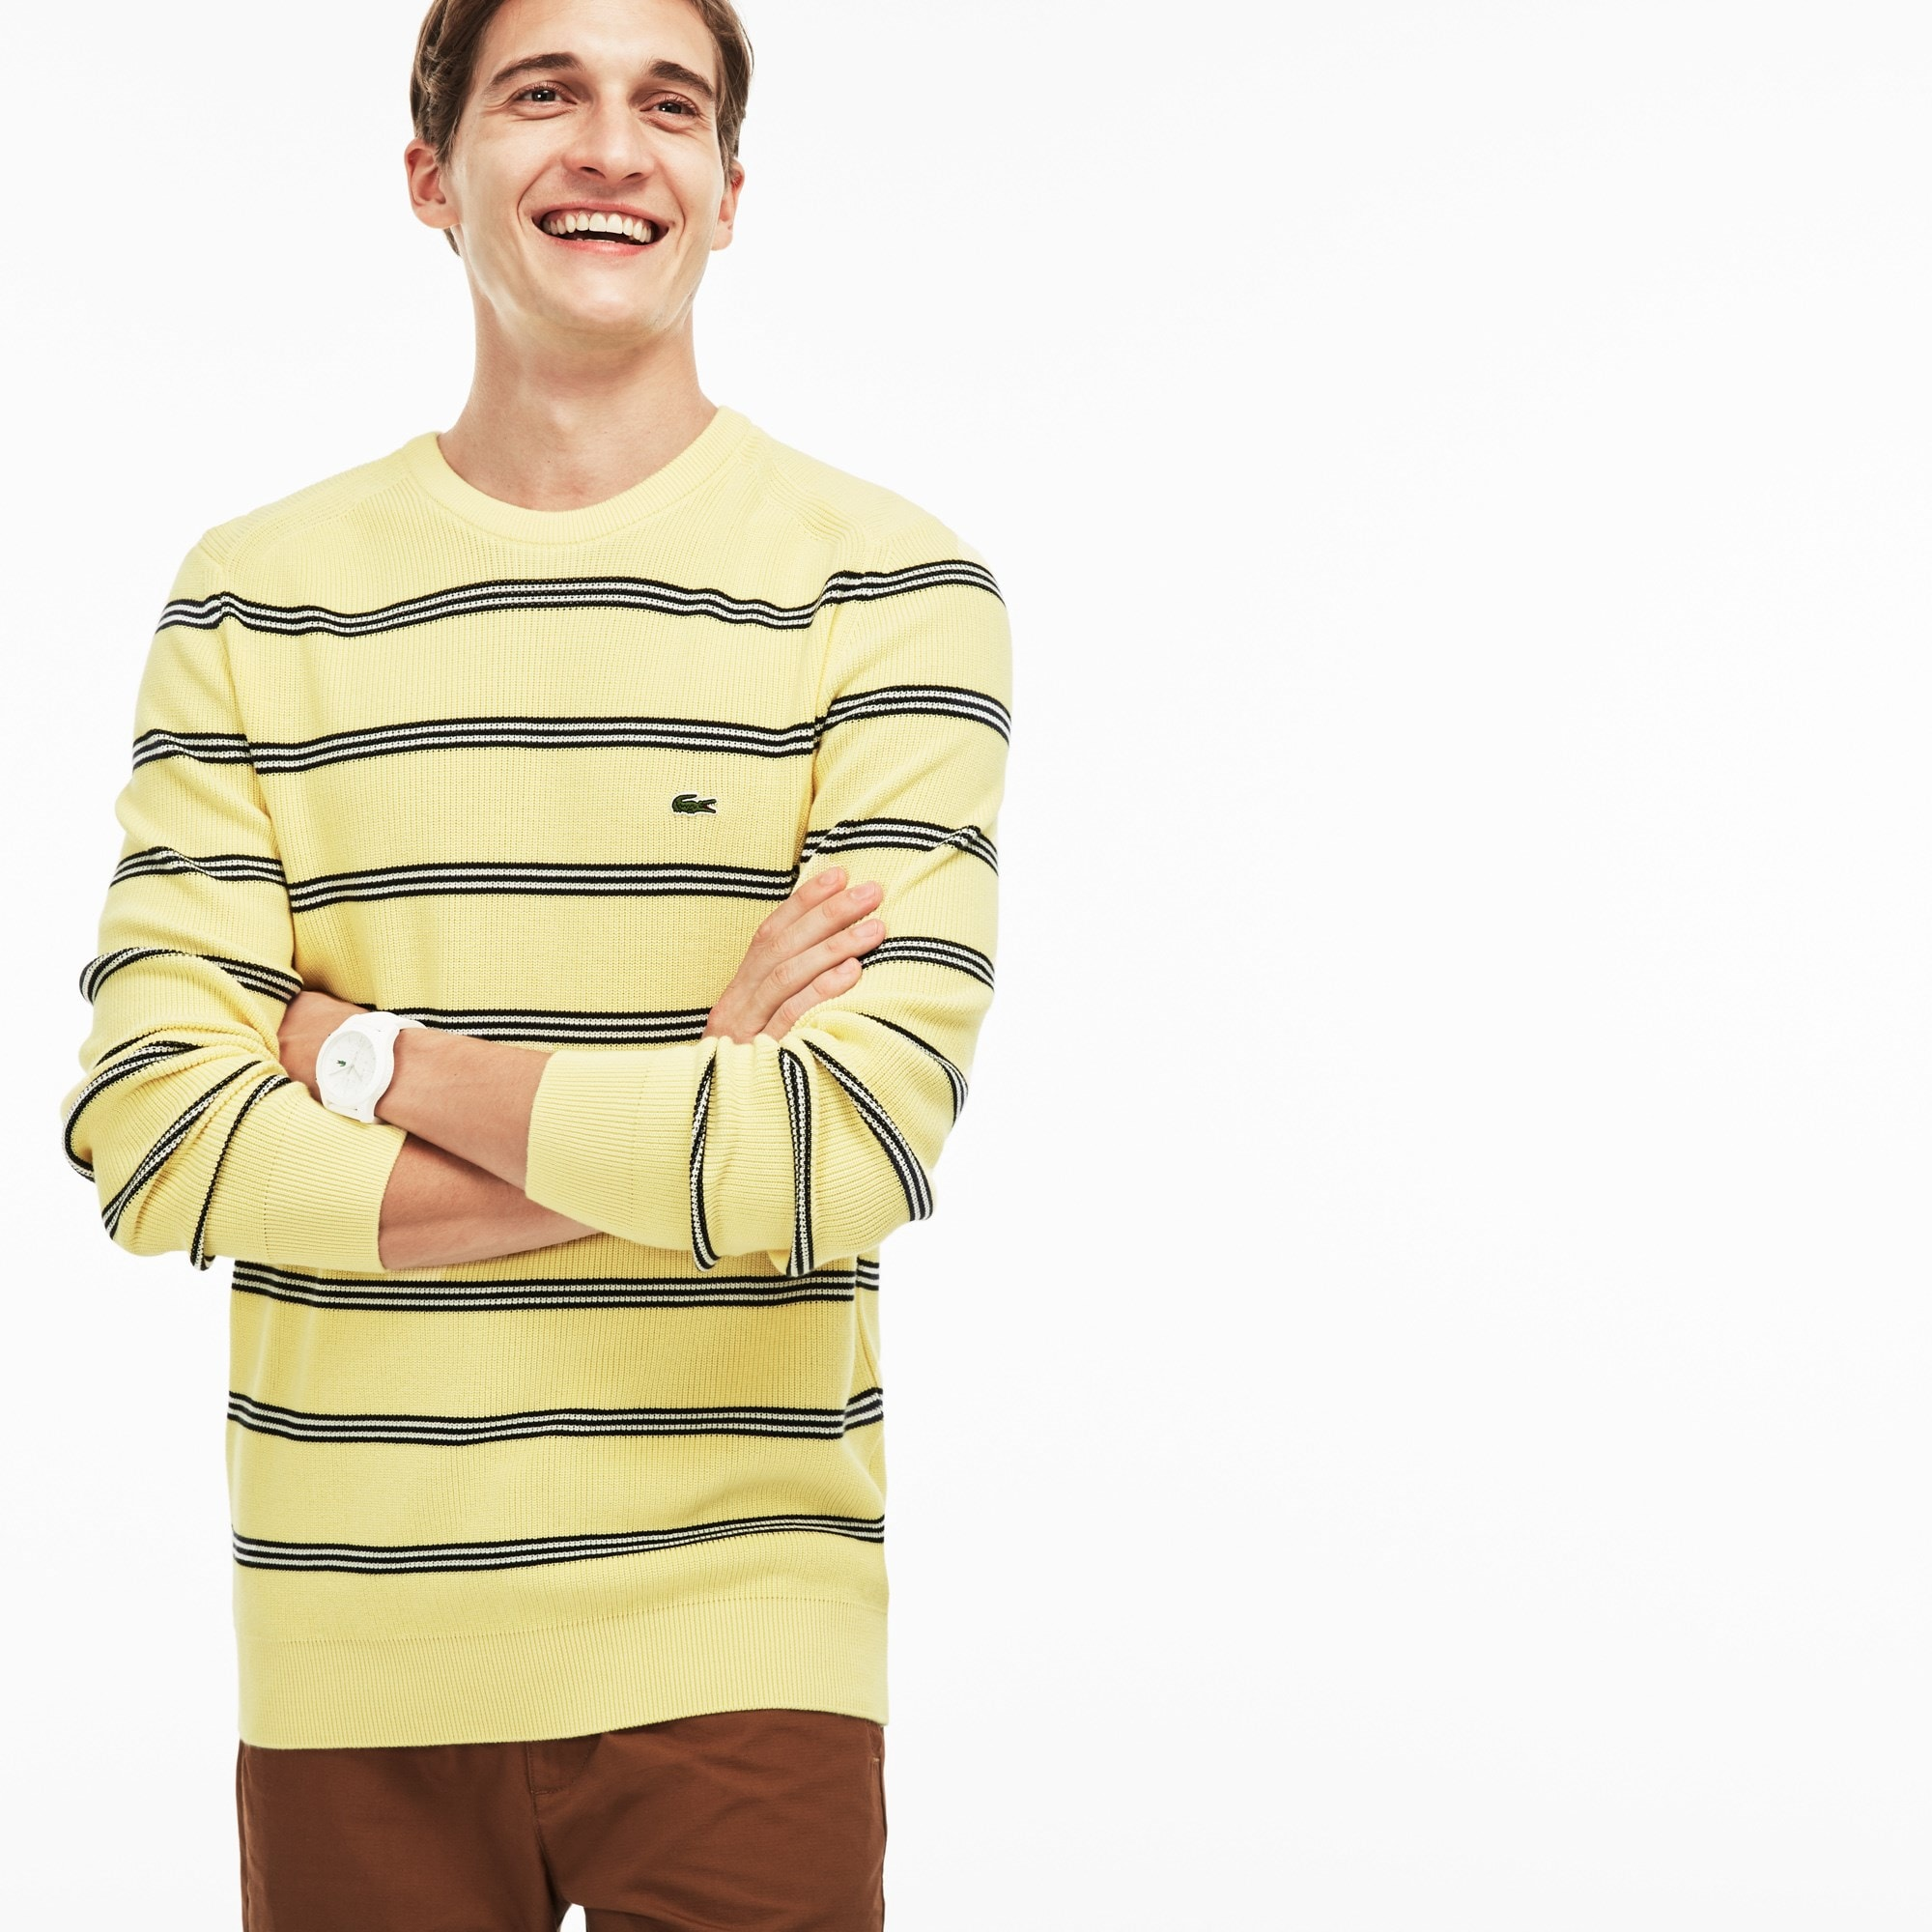 Men's Crew Neck Striped Bands Ribbed Cotton Sweater